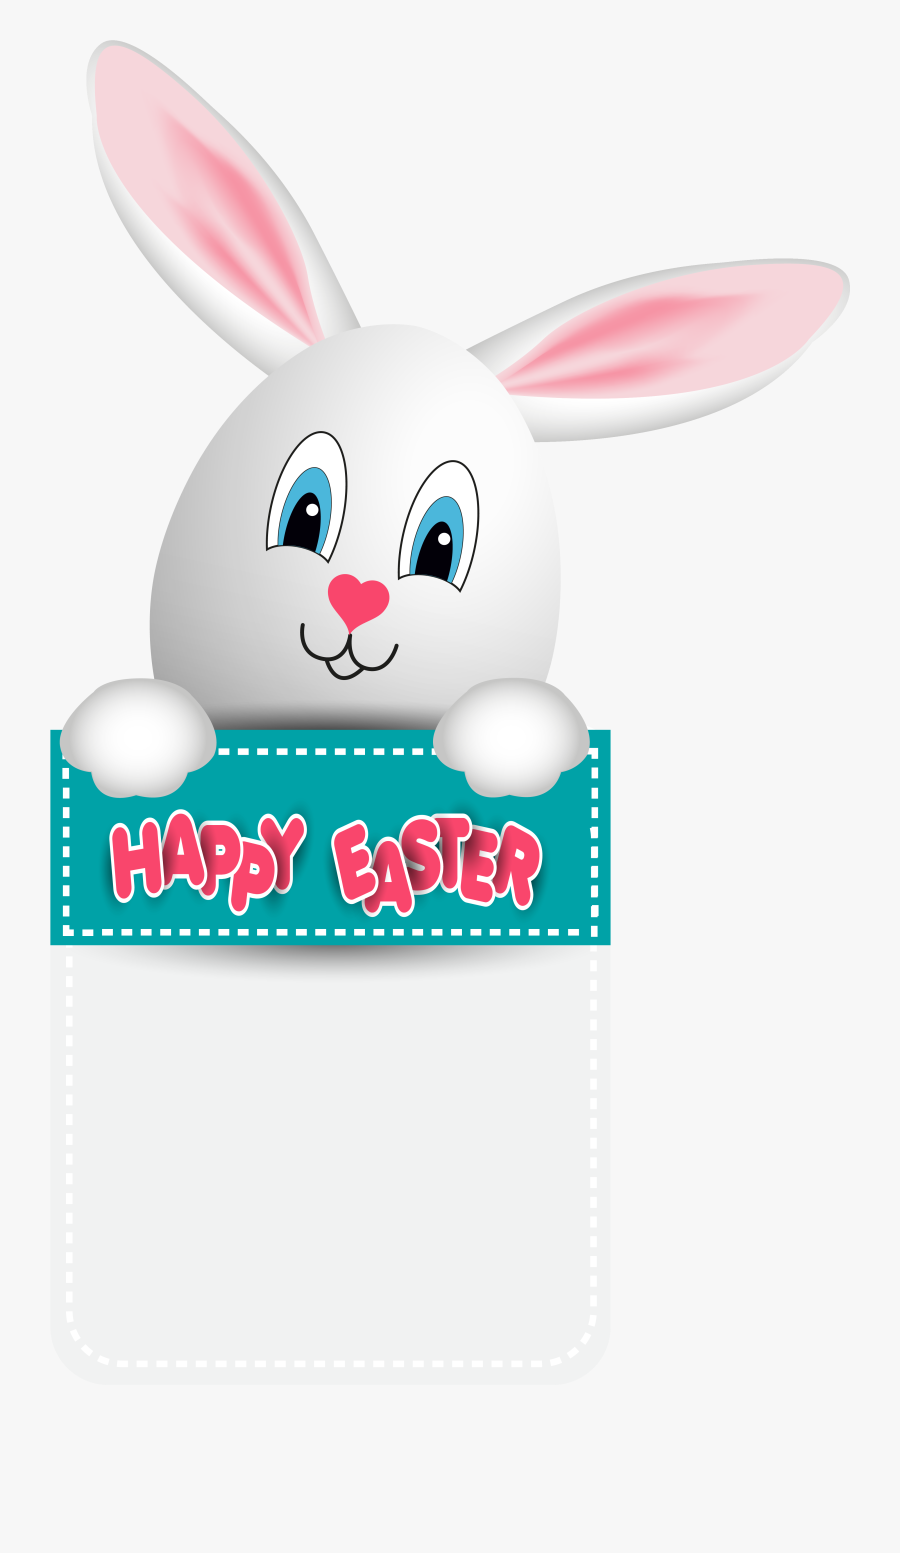 With Easter Bunny Egg Happy Hd Image Free Png Clipart - Happy Easter 2019 With Bunny, Transparent Clipart